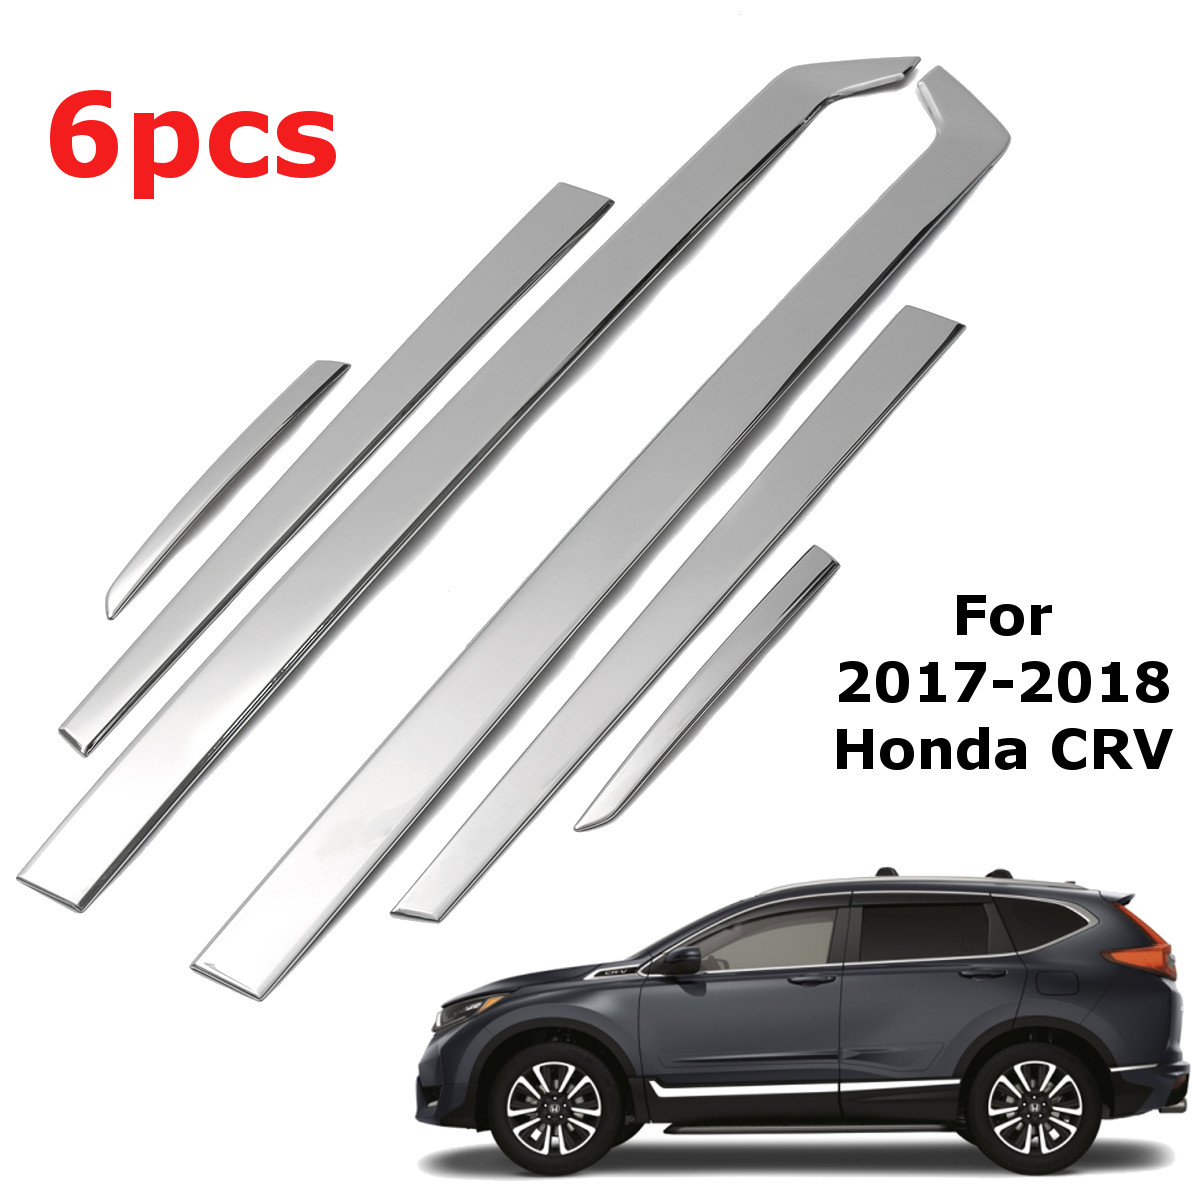 Car Chrome Stainless Steel Door Body Side Mouldings Trim For Honda CRV 2017-2018 car styling abs chrome body side moldings side door decoration for hyundai ix35